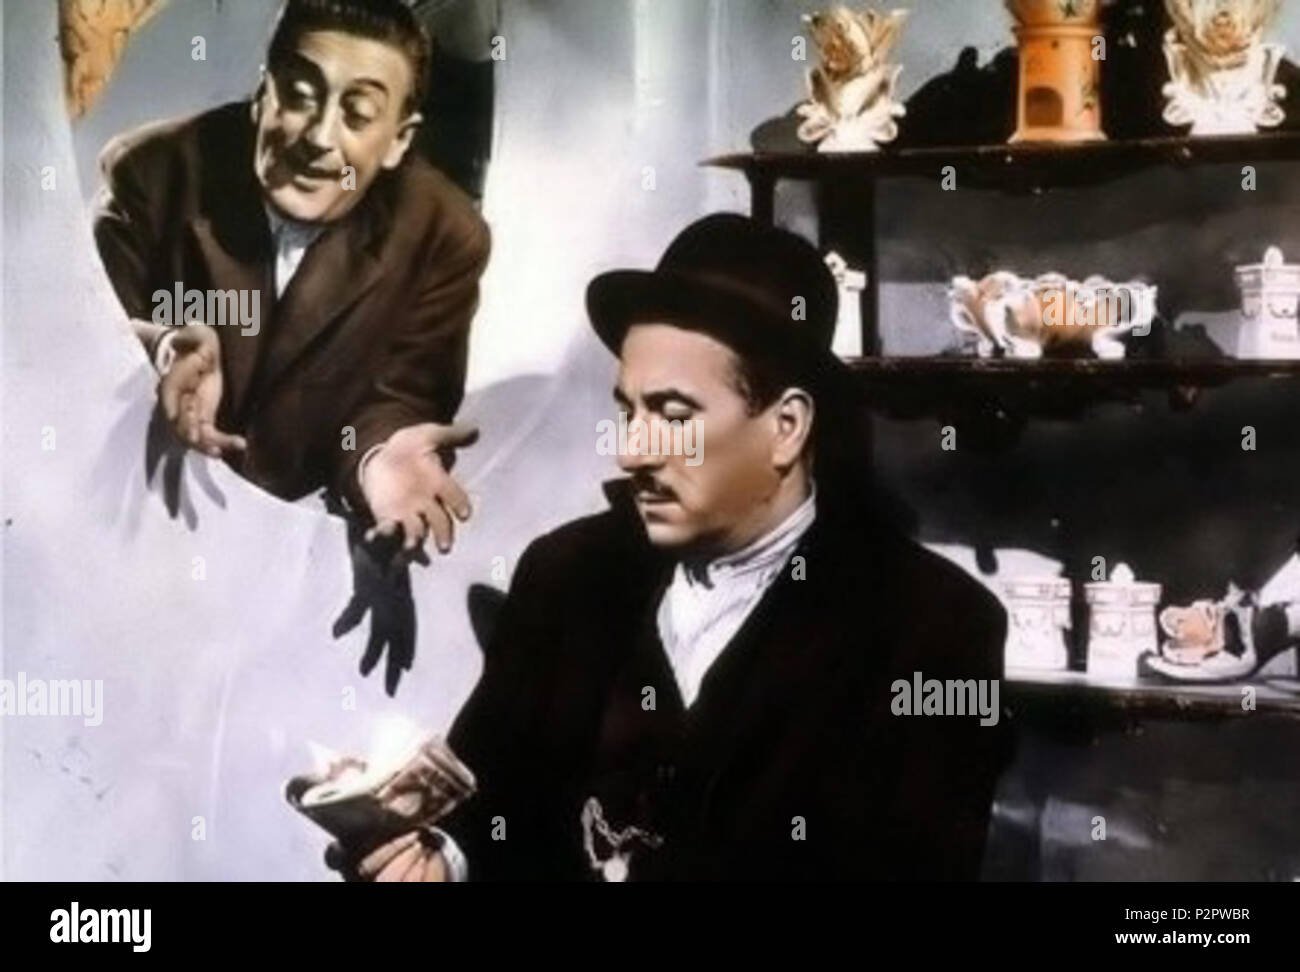 Toto And Peppino Stock Photos & Toto And Peppino Stock Images - Alamy